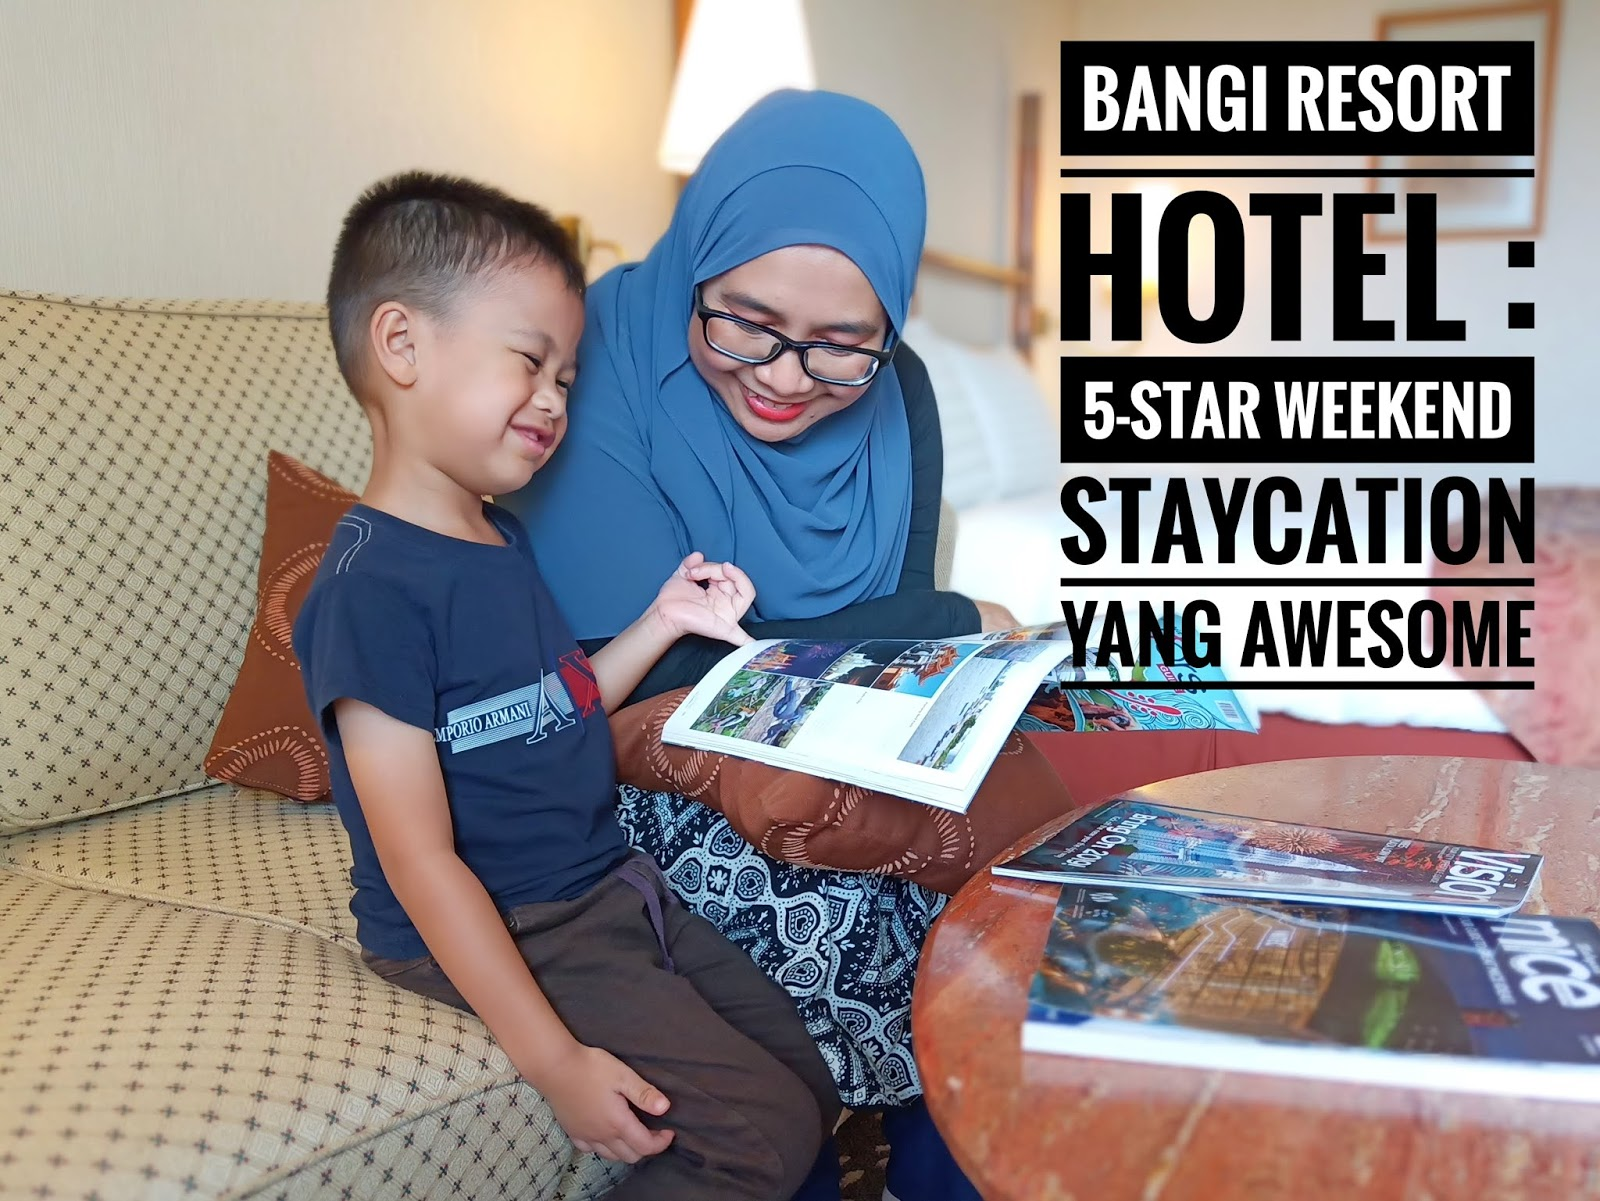 Bangi Resort Hotel : 5-Star Weekend Staycation